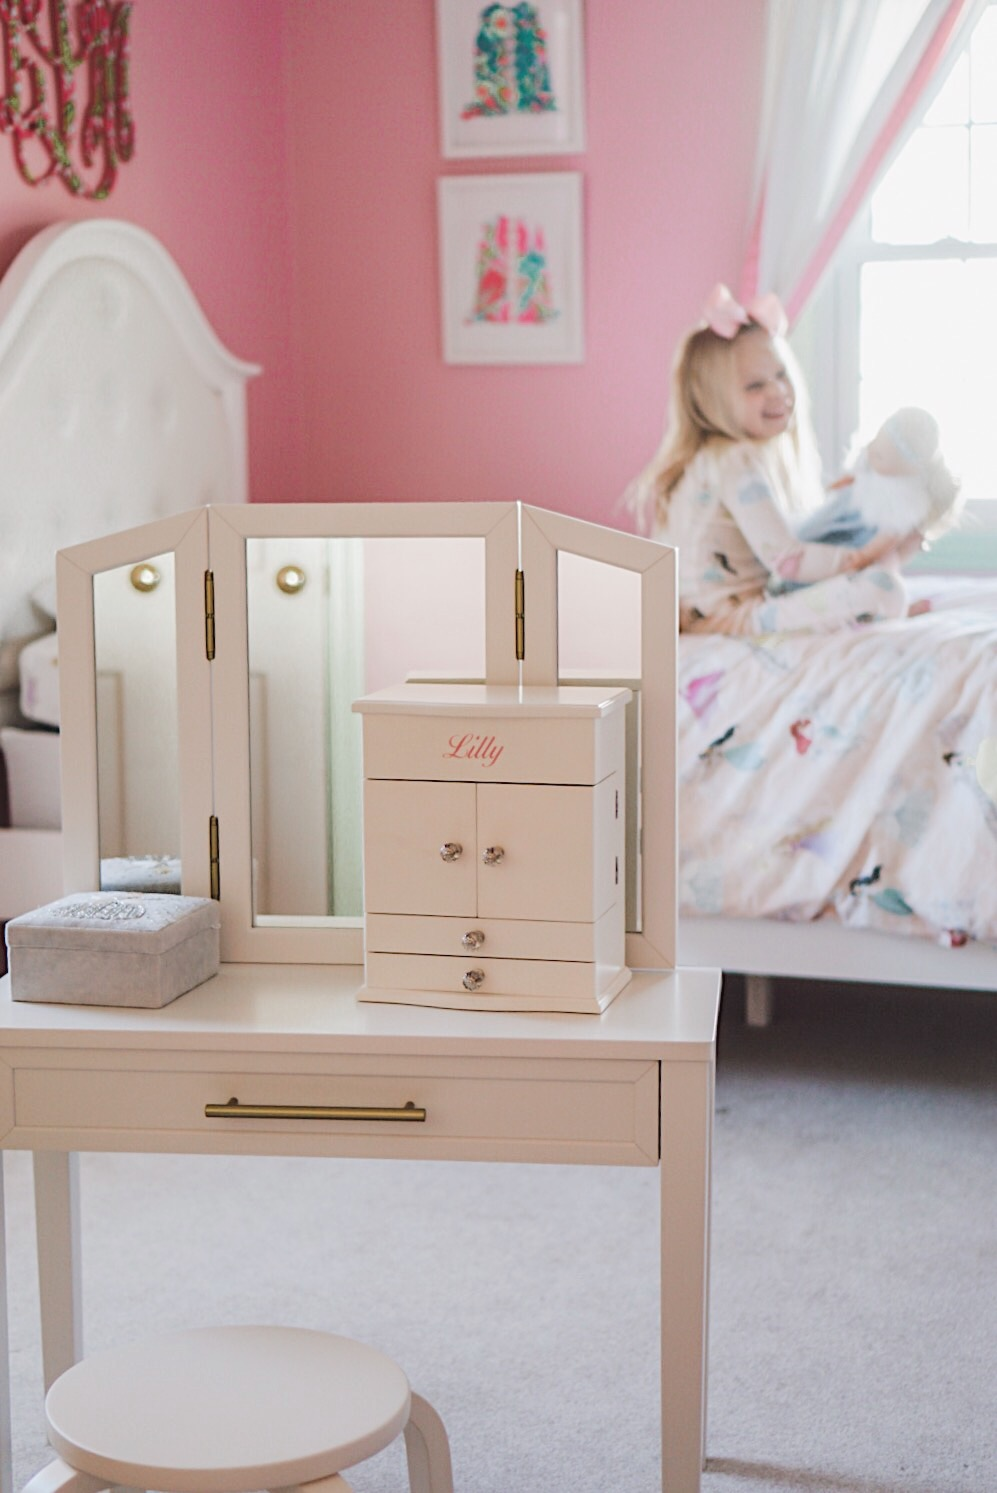 Lilly S Surprise Disney Princess Bedroom With Pottery Barn Kids Style Her Strongstyle Her Strong